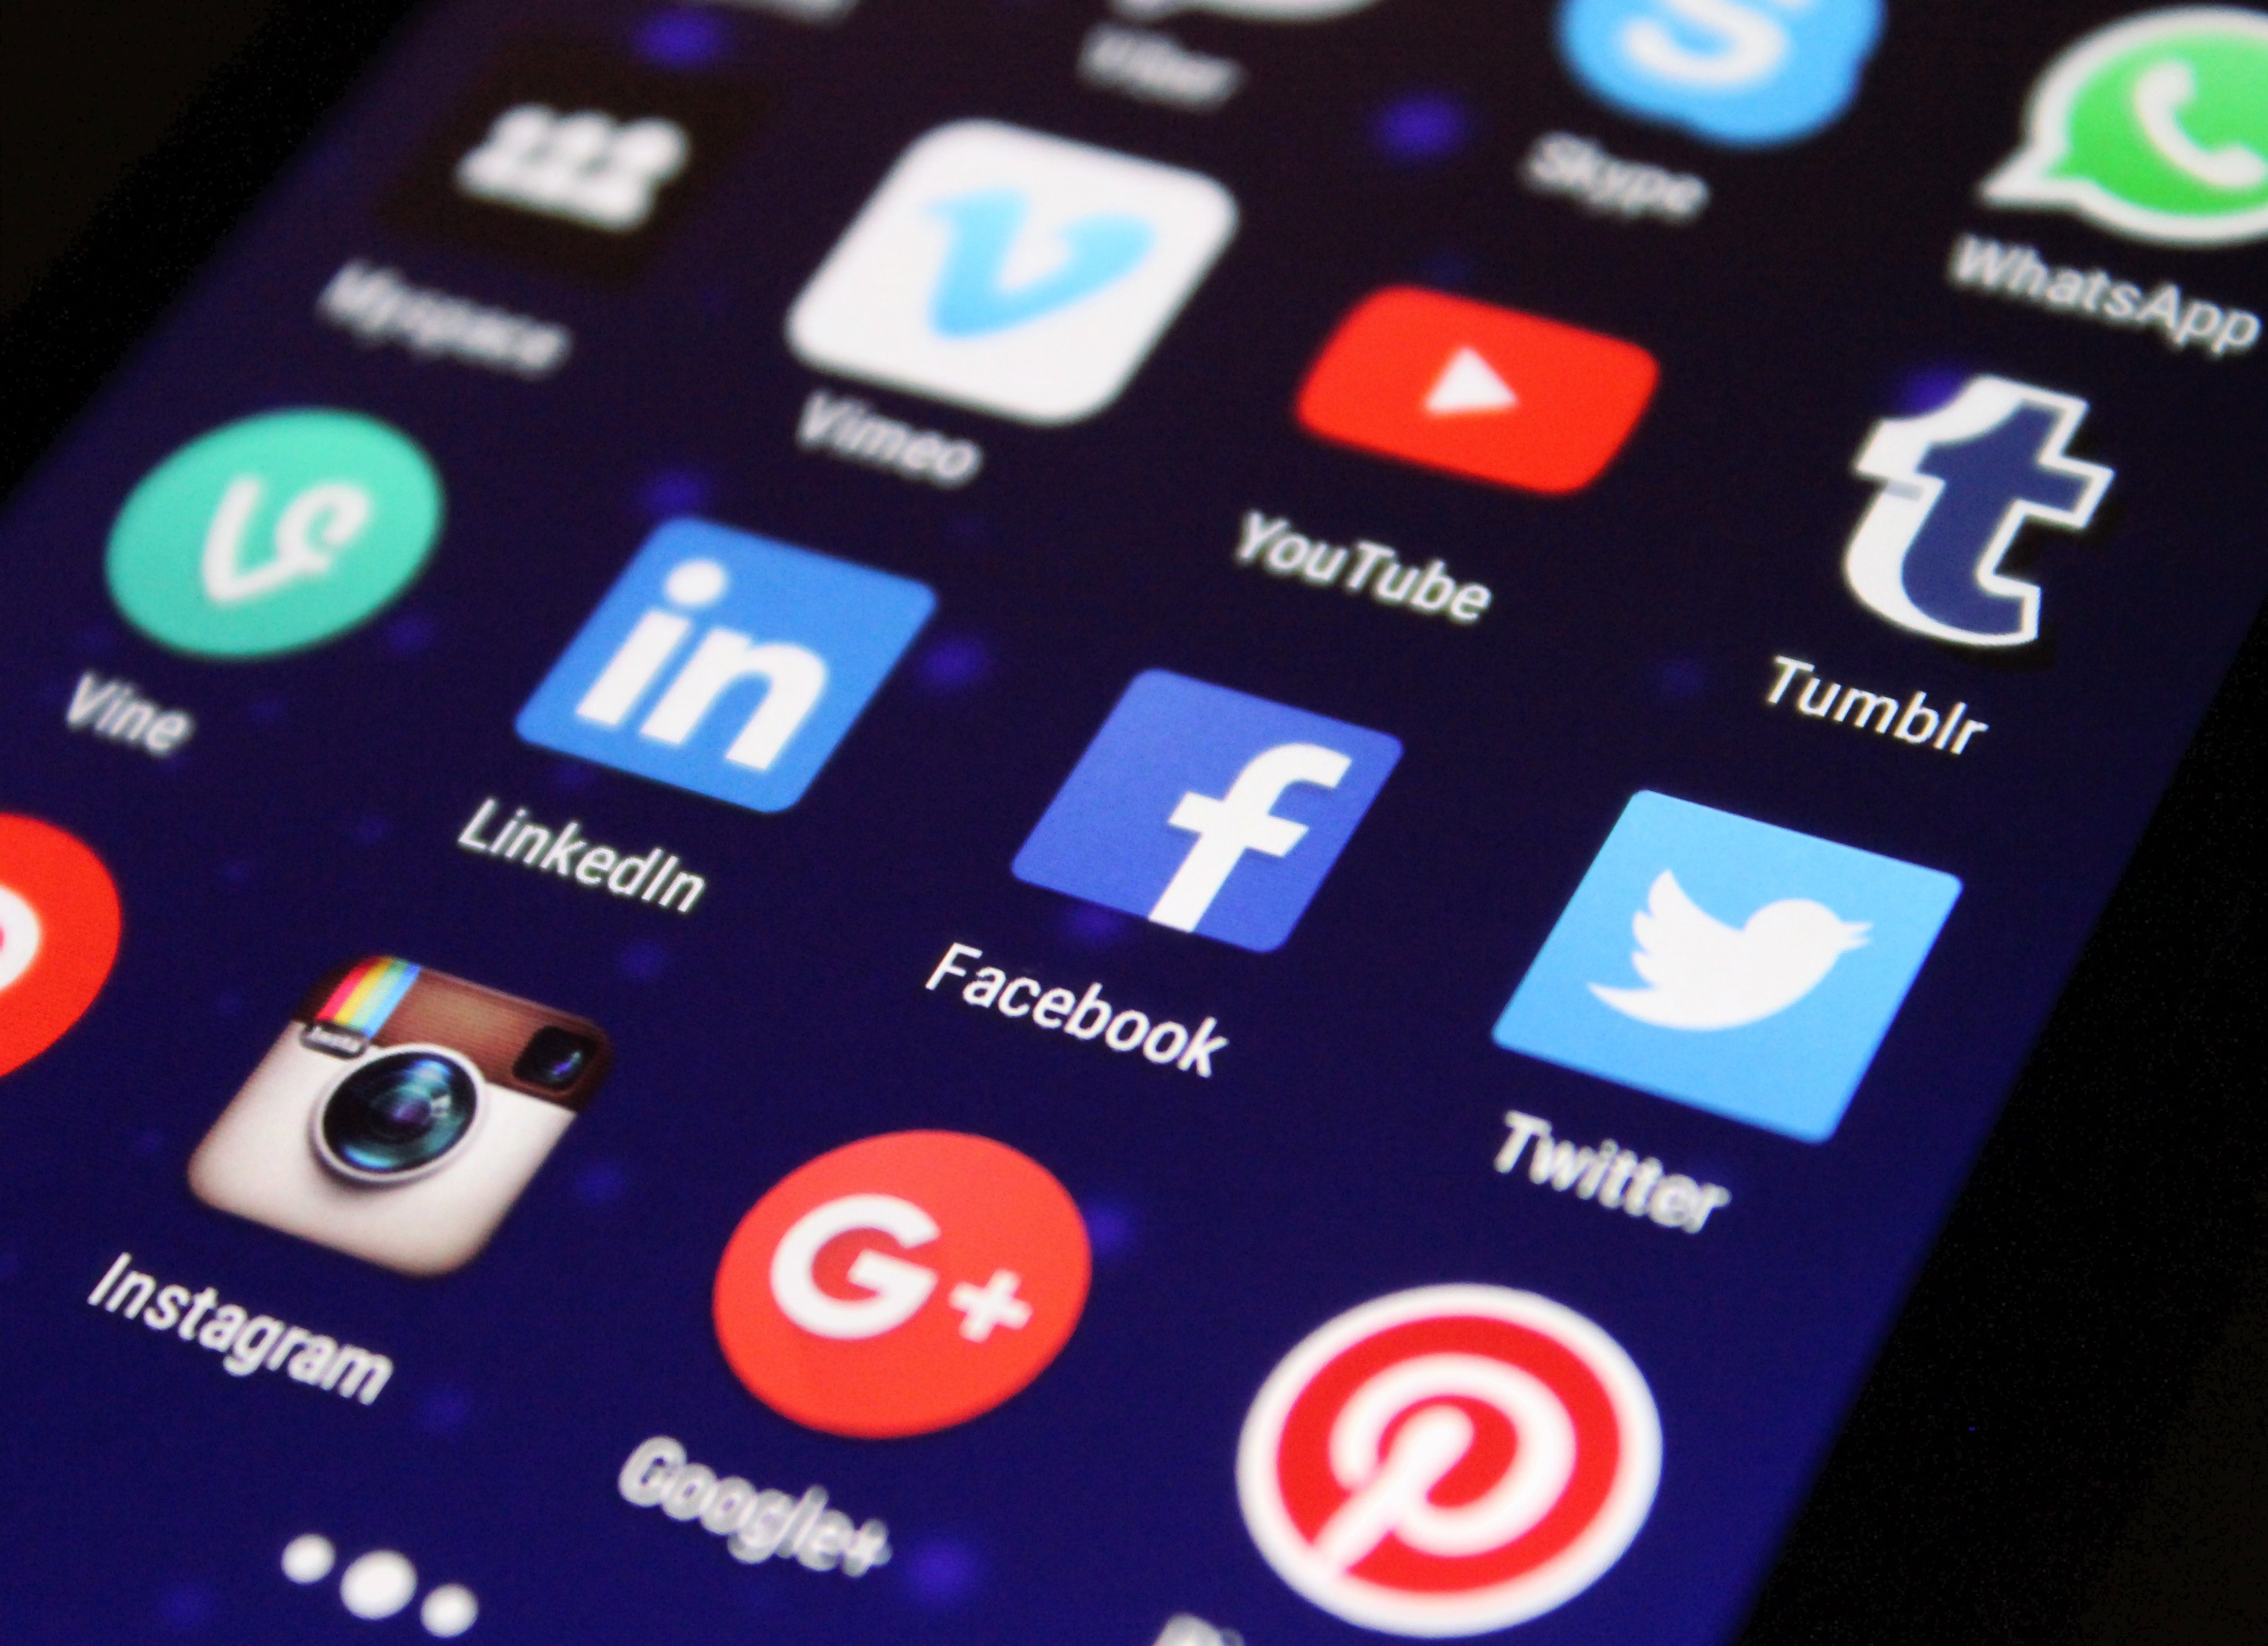 using Social media and how to get web design clients fast